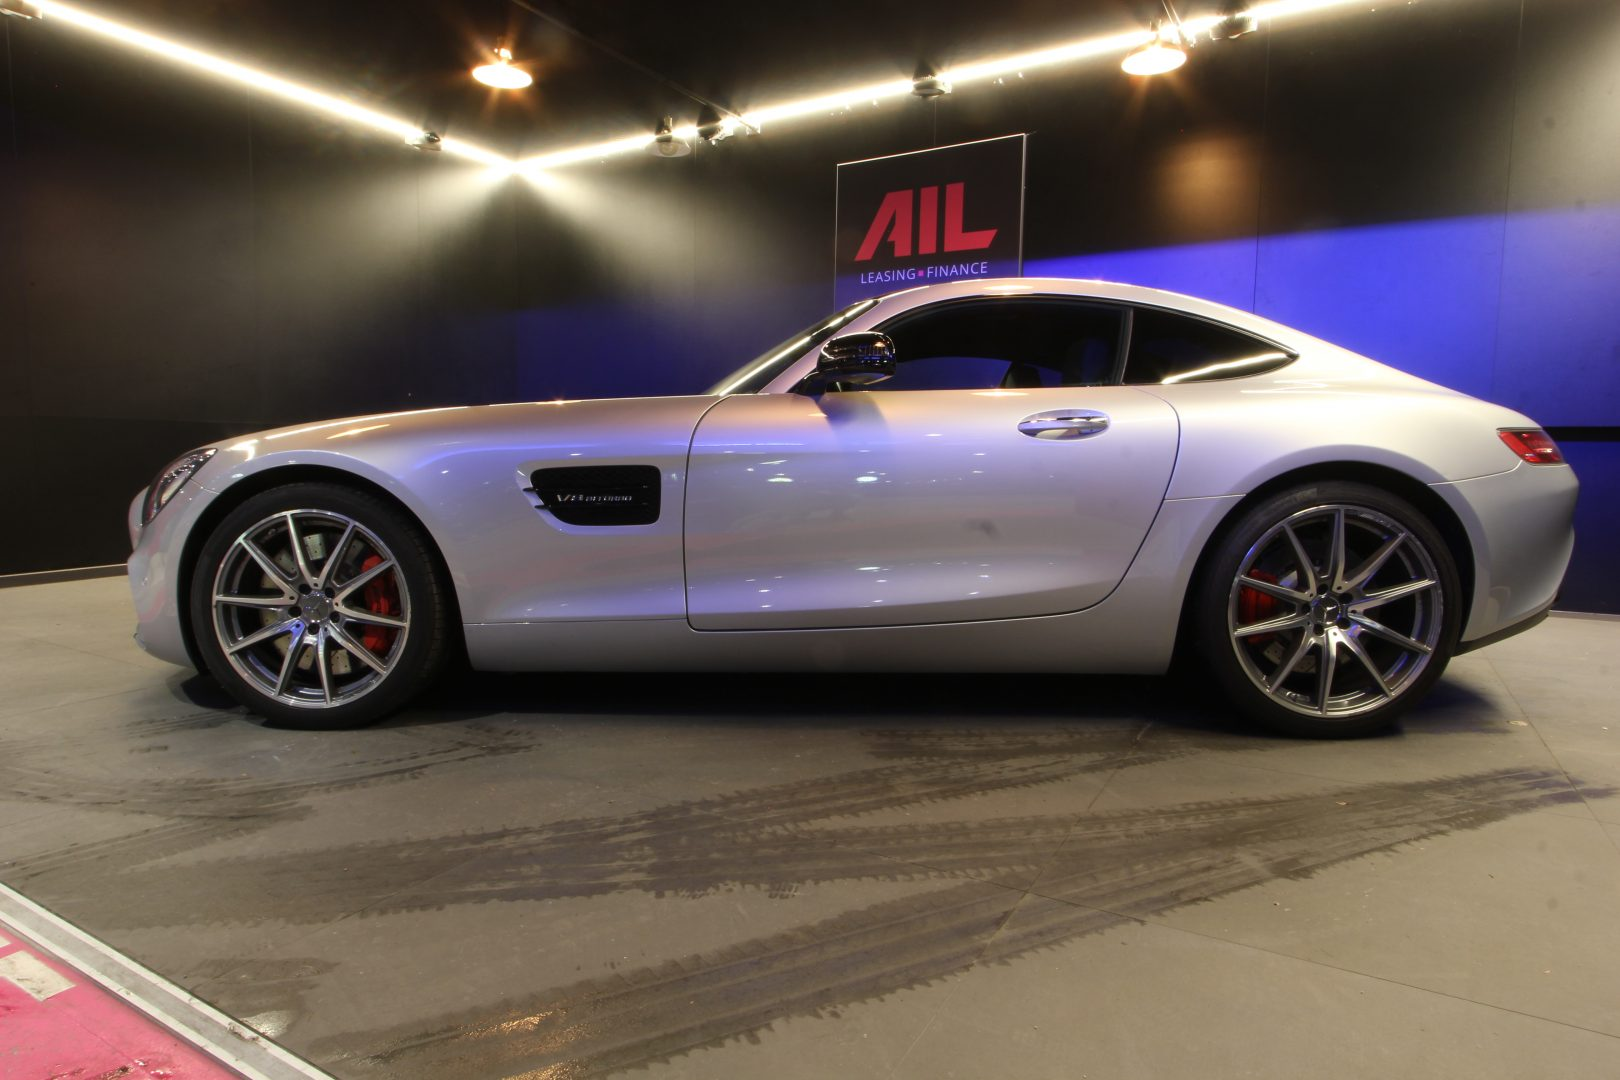 AIL Mercedes-Benz AMG GT S Coupe 15